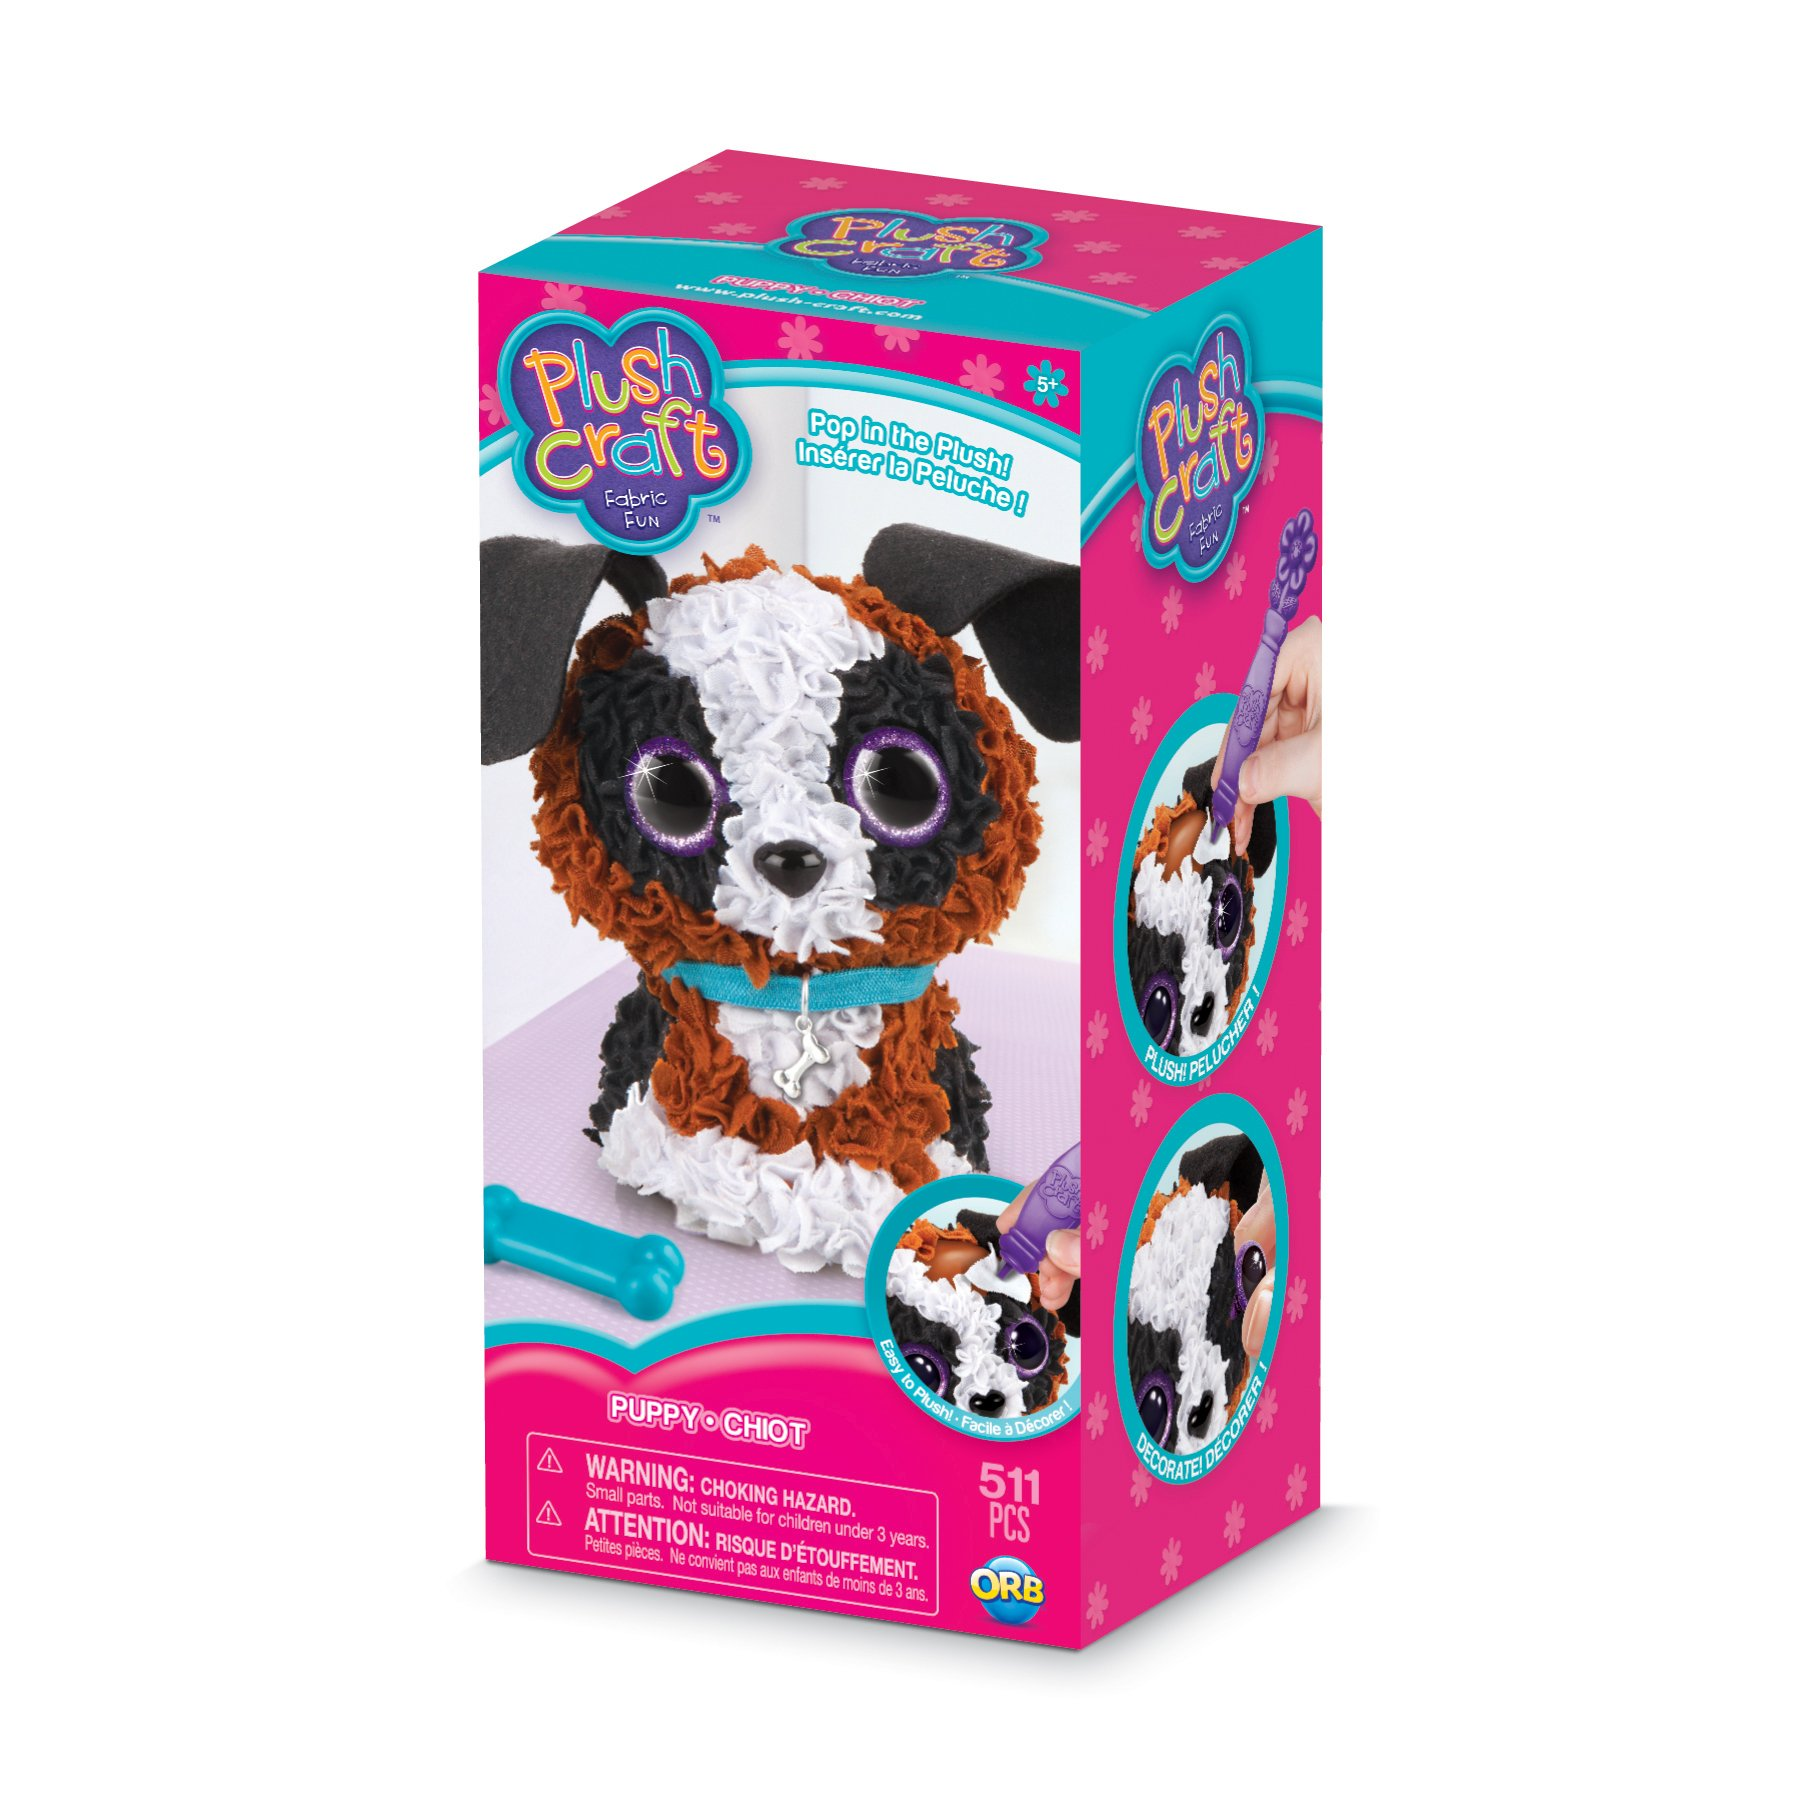 The Orb Factory PlushCraft Puppy 3D Kit